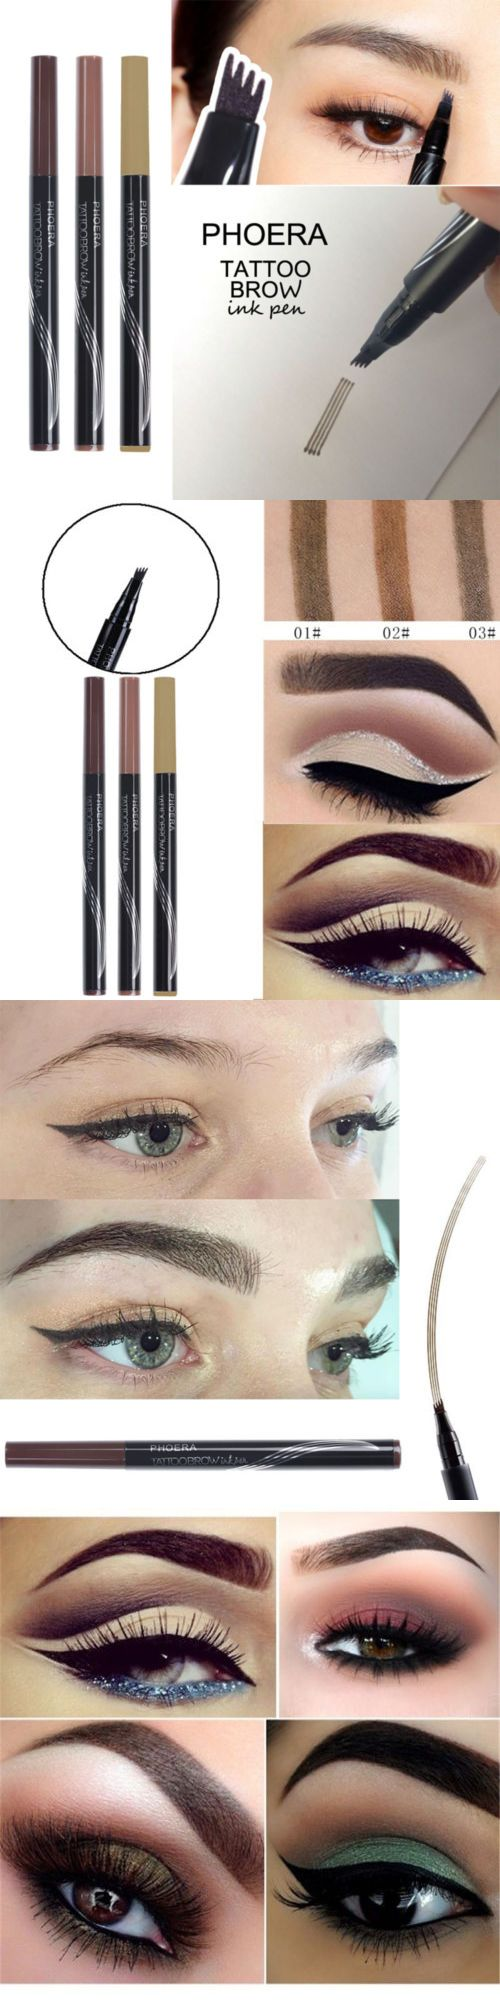 71ad6e95a61 Eyebrow Liner and Definition 78089  2Pcs Patented Microblading Tattoo  Eyebrow Ink Pen Eye Brow Makeup Pencil Sr48 -  BUY IT NOW ONLY   11.05 on  eBay!